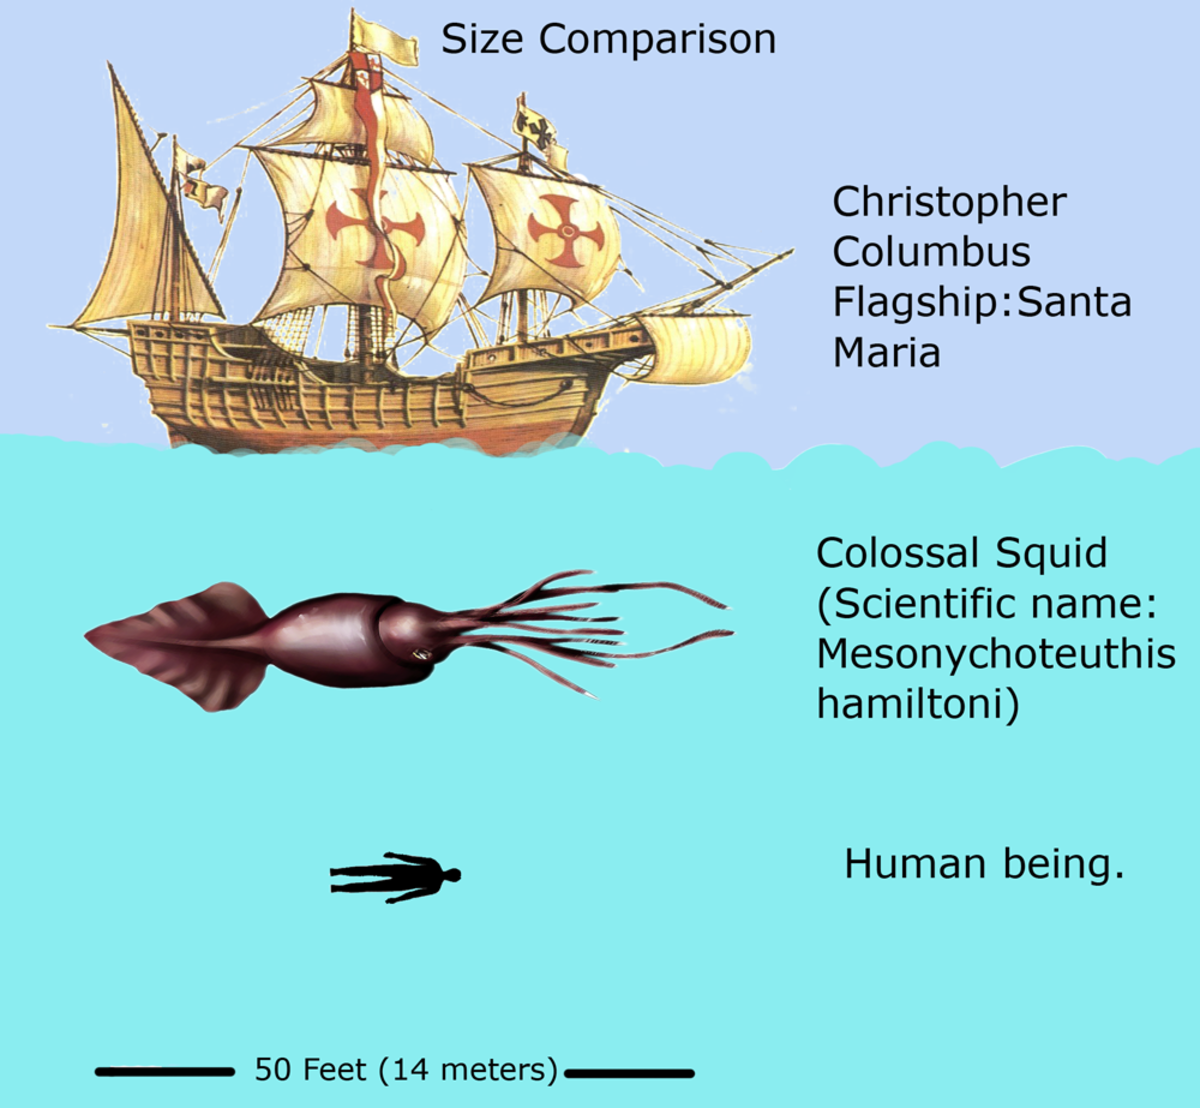 Giant Squid size comparison.